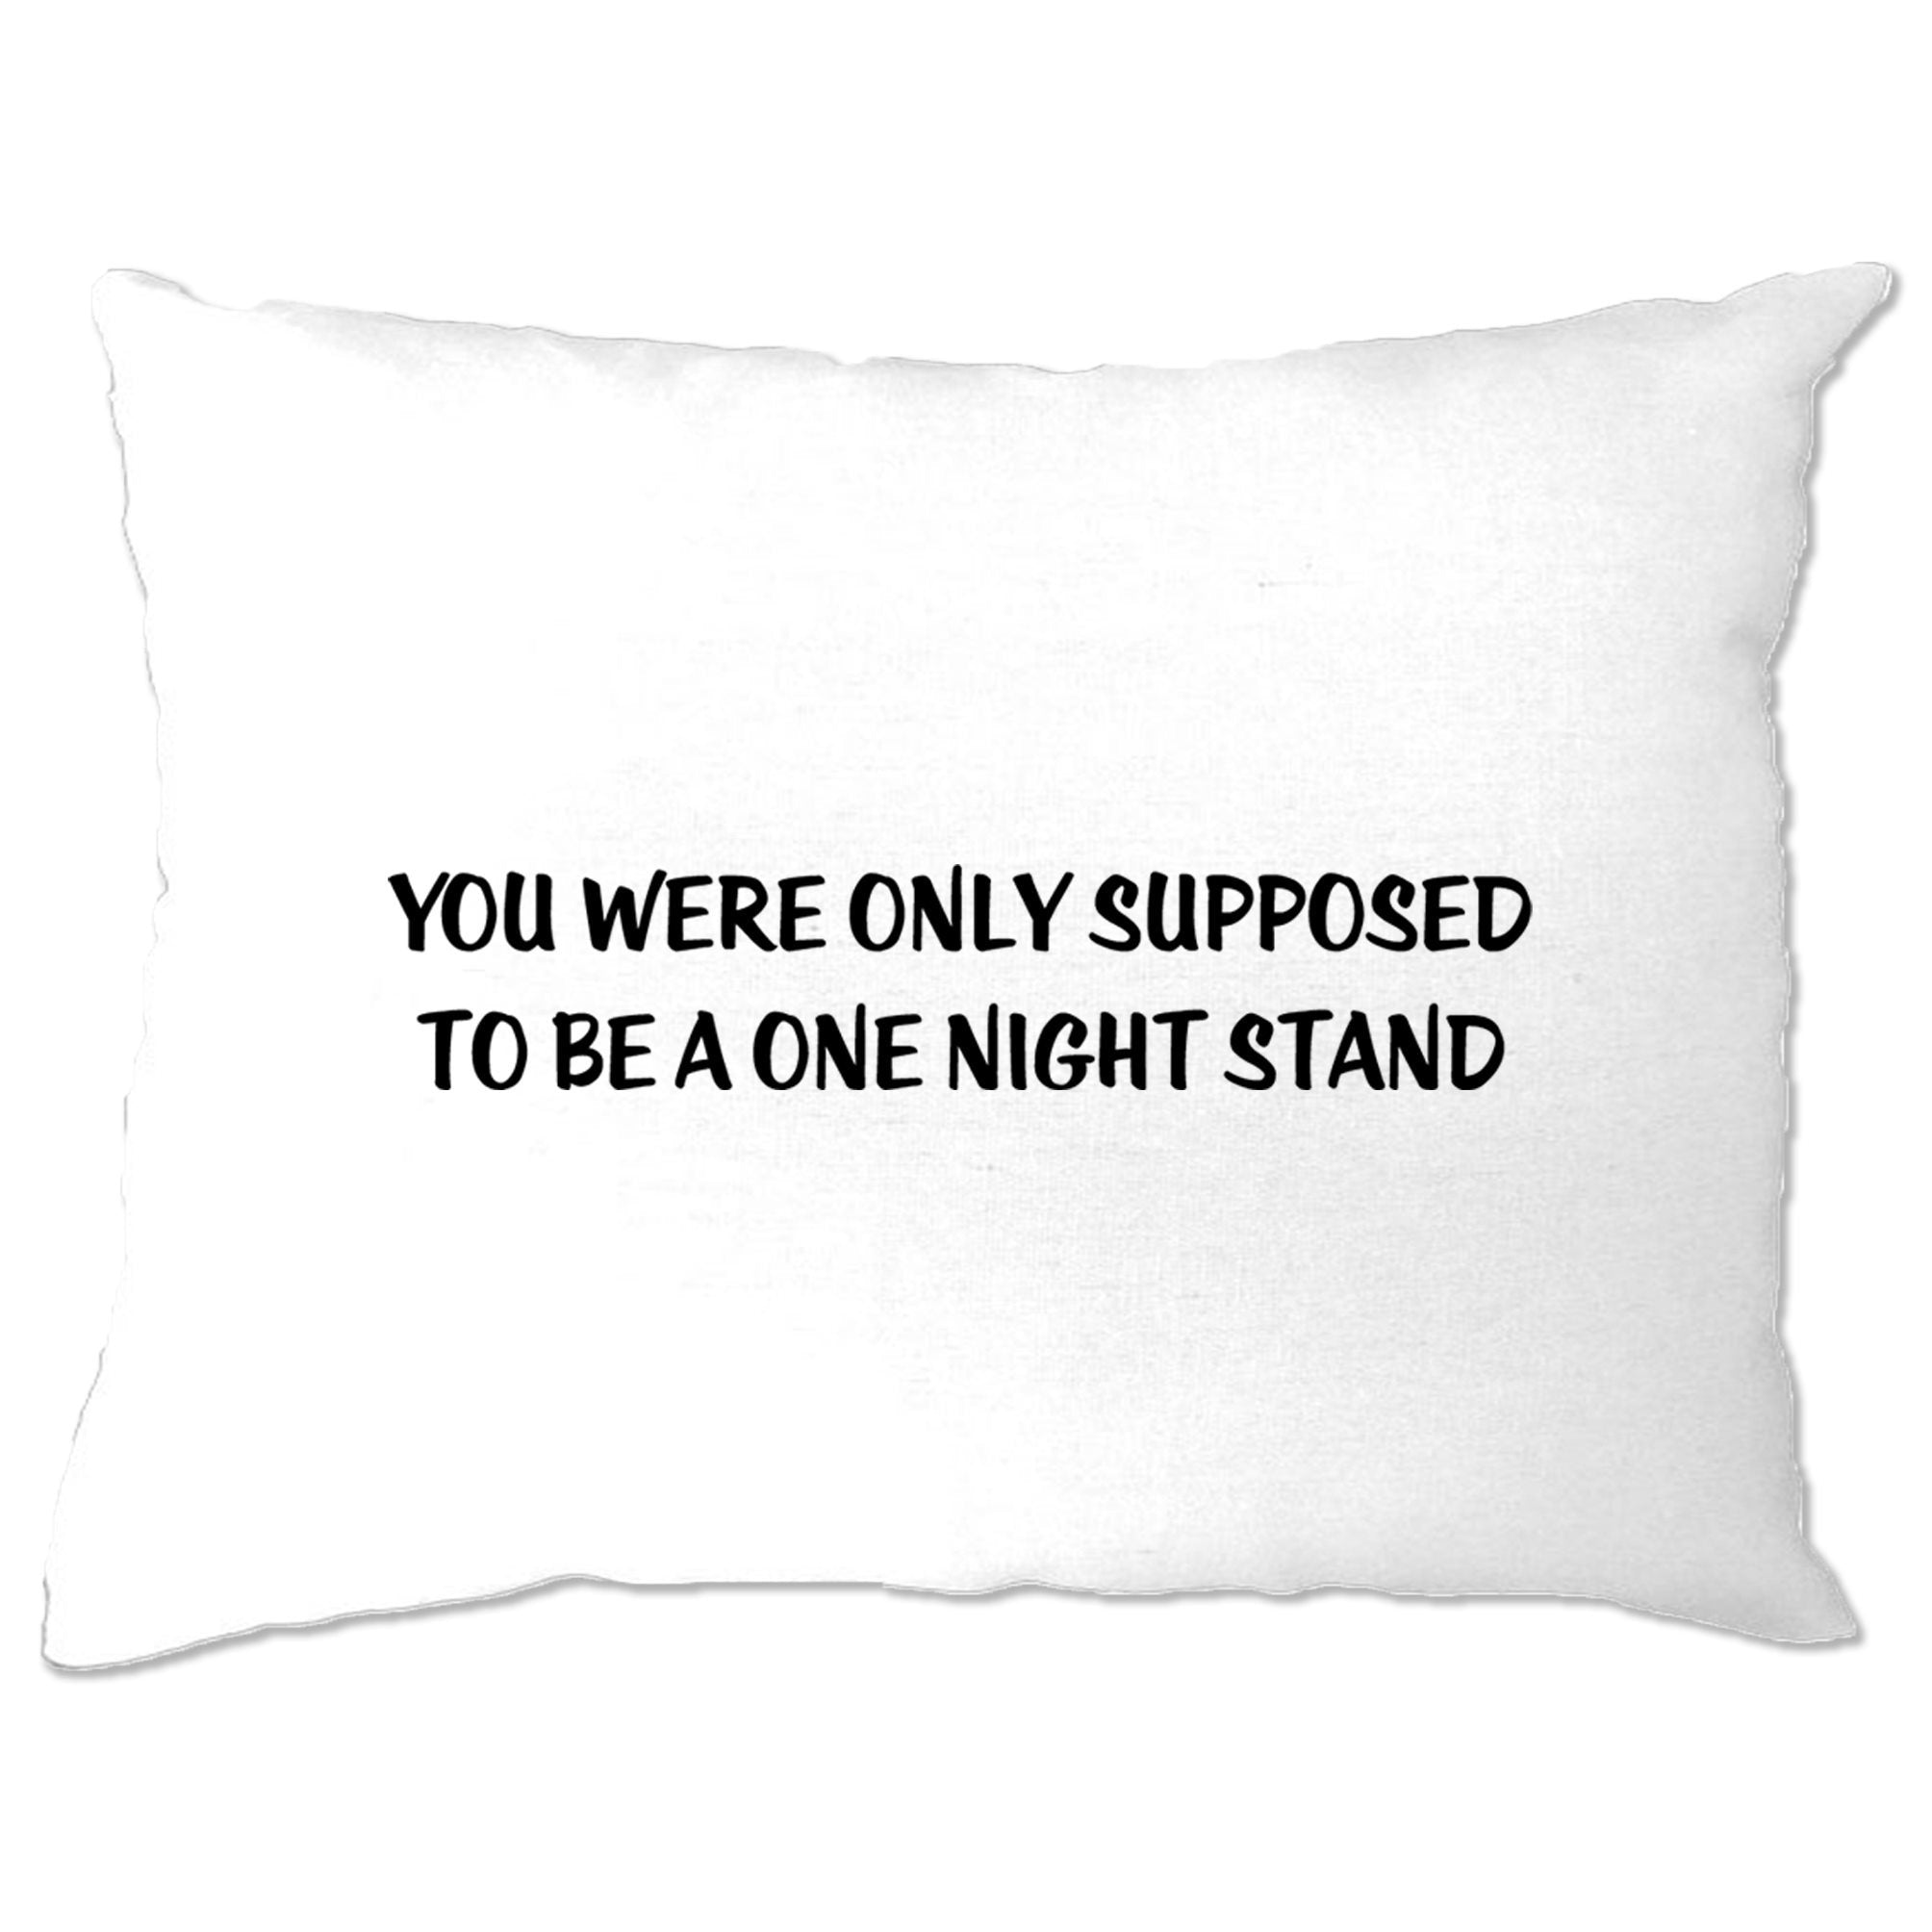 Valentine's Pillow Case A One Night Stand